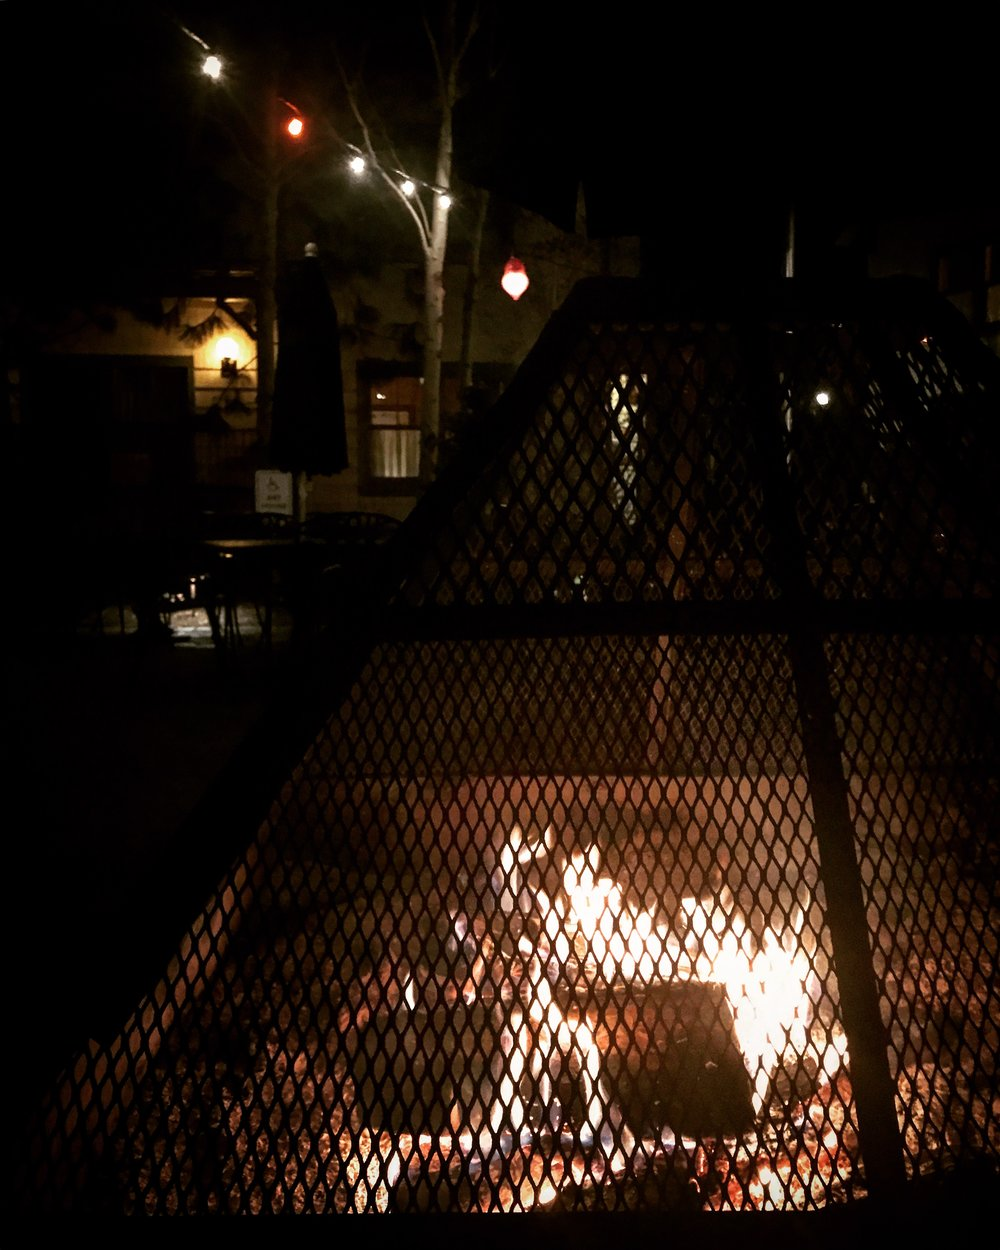 The firepits at Hugh O'Kanes always beckon me with their ambiance, even in the coldest weather...